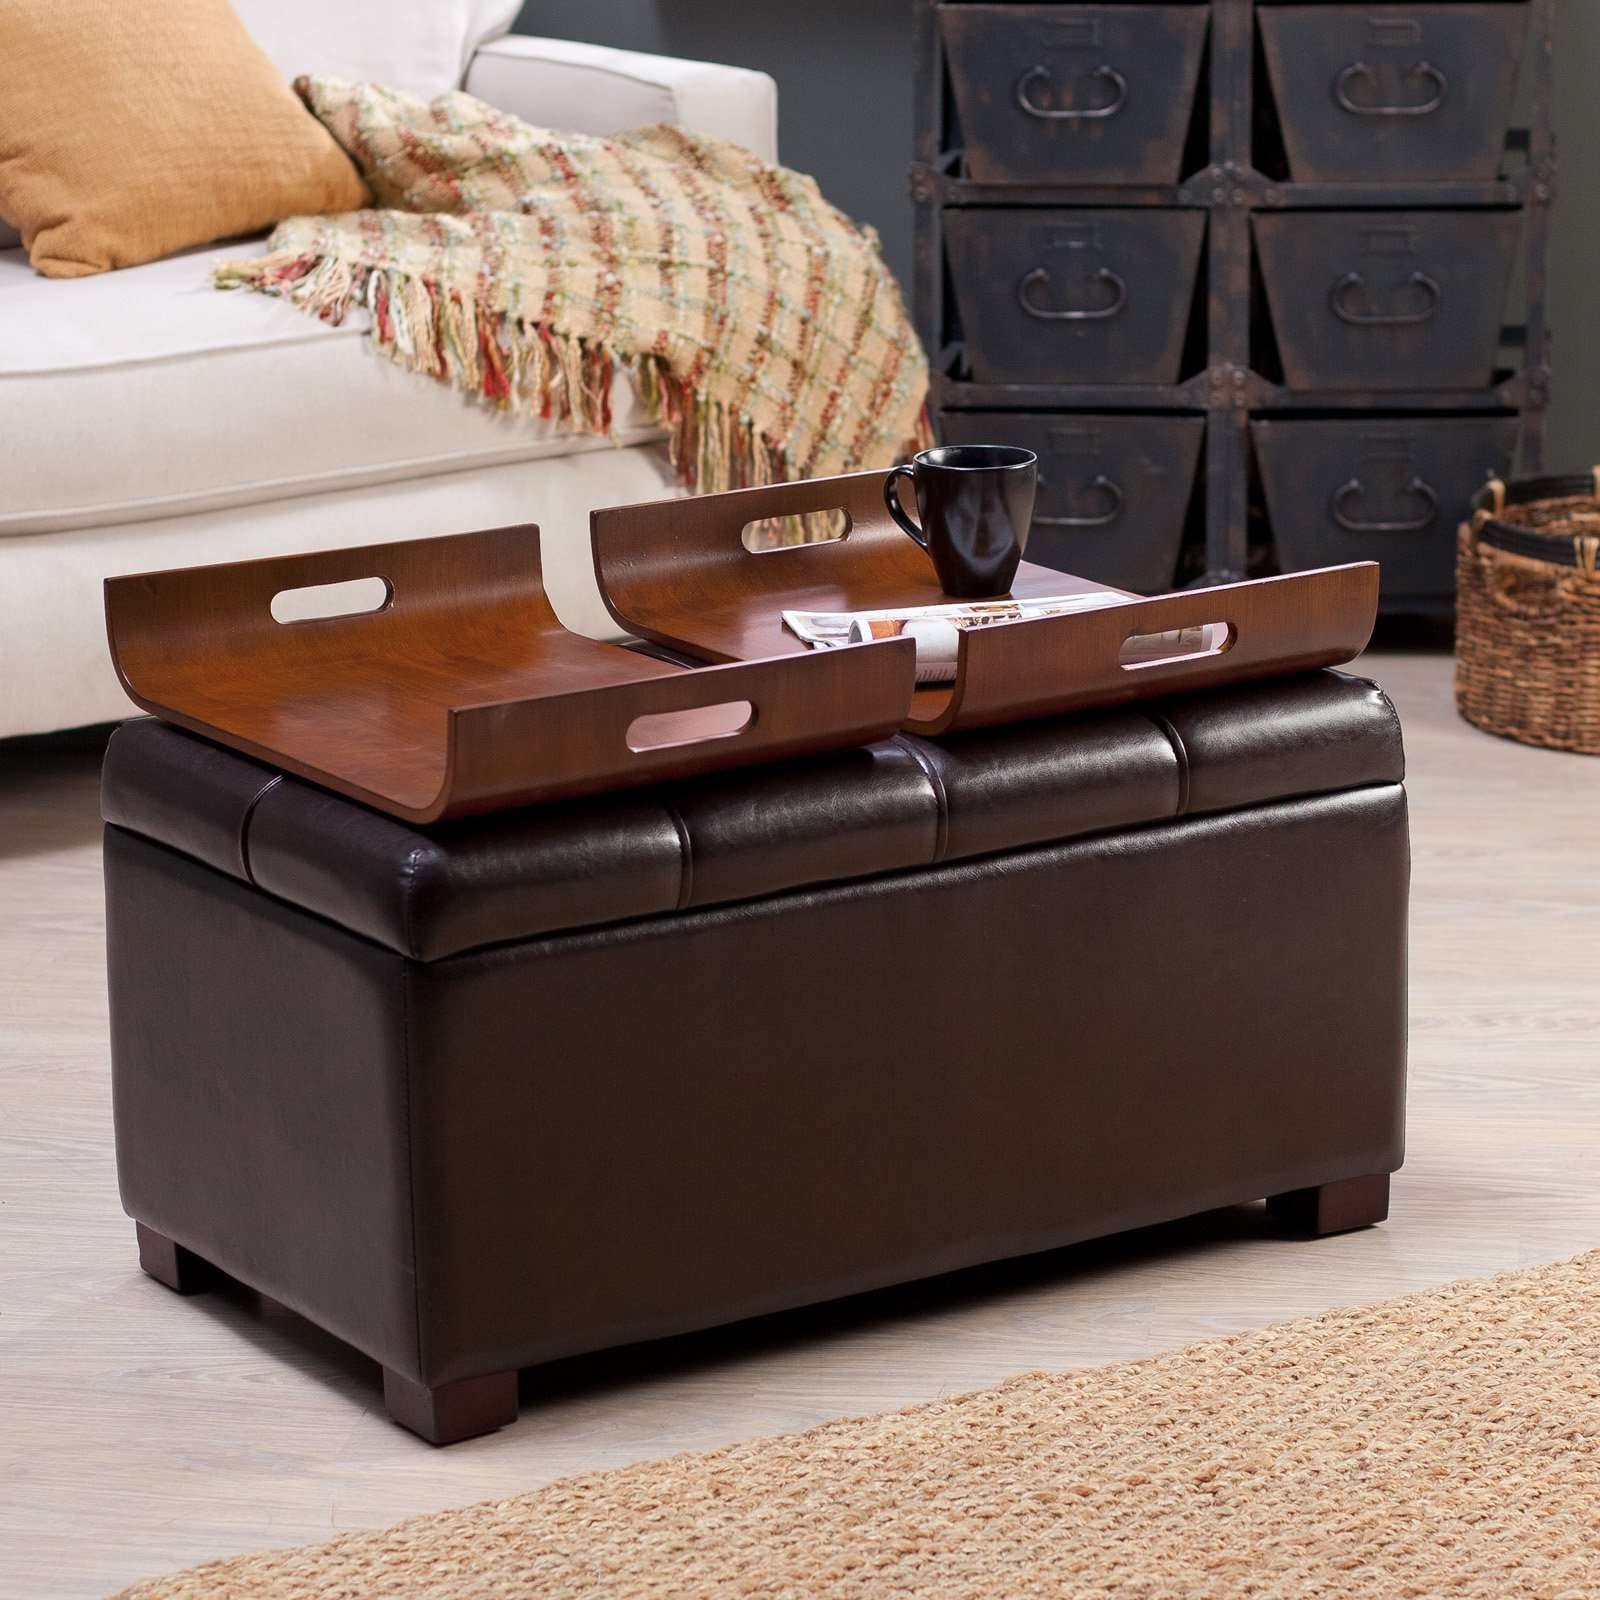 Ottoman Coffee Table Black 2018 Popular Brown Leather Ottoman Coffee Tables With Storages